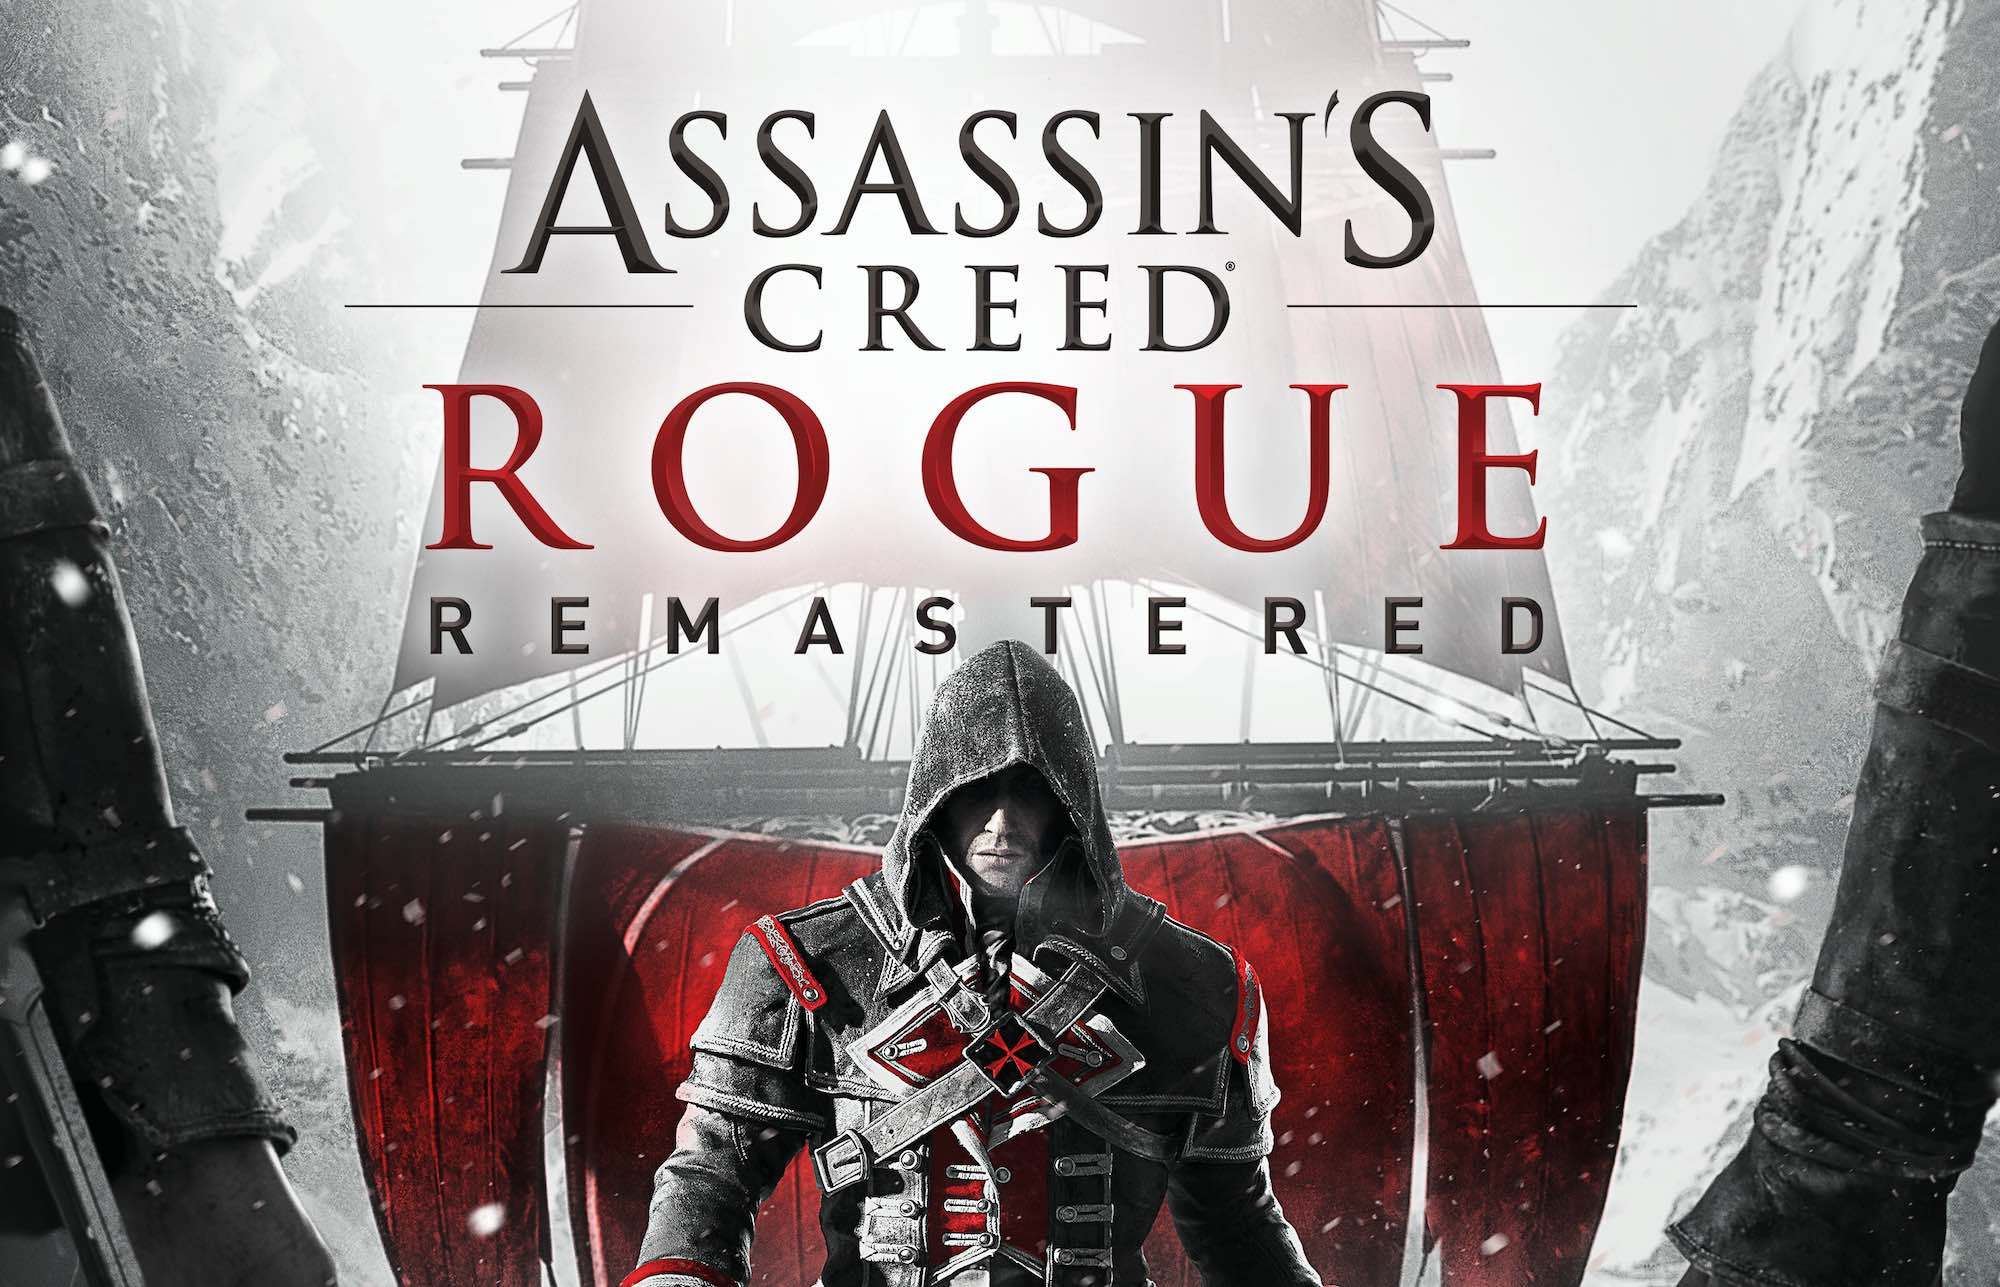 Assassin's Creed Rogue 4K Remaster Officially Coming To PS4 and Xbox One